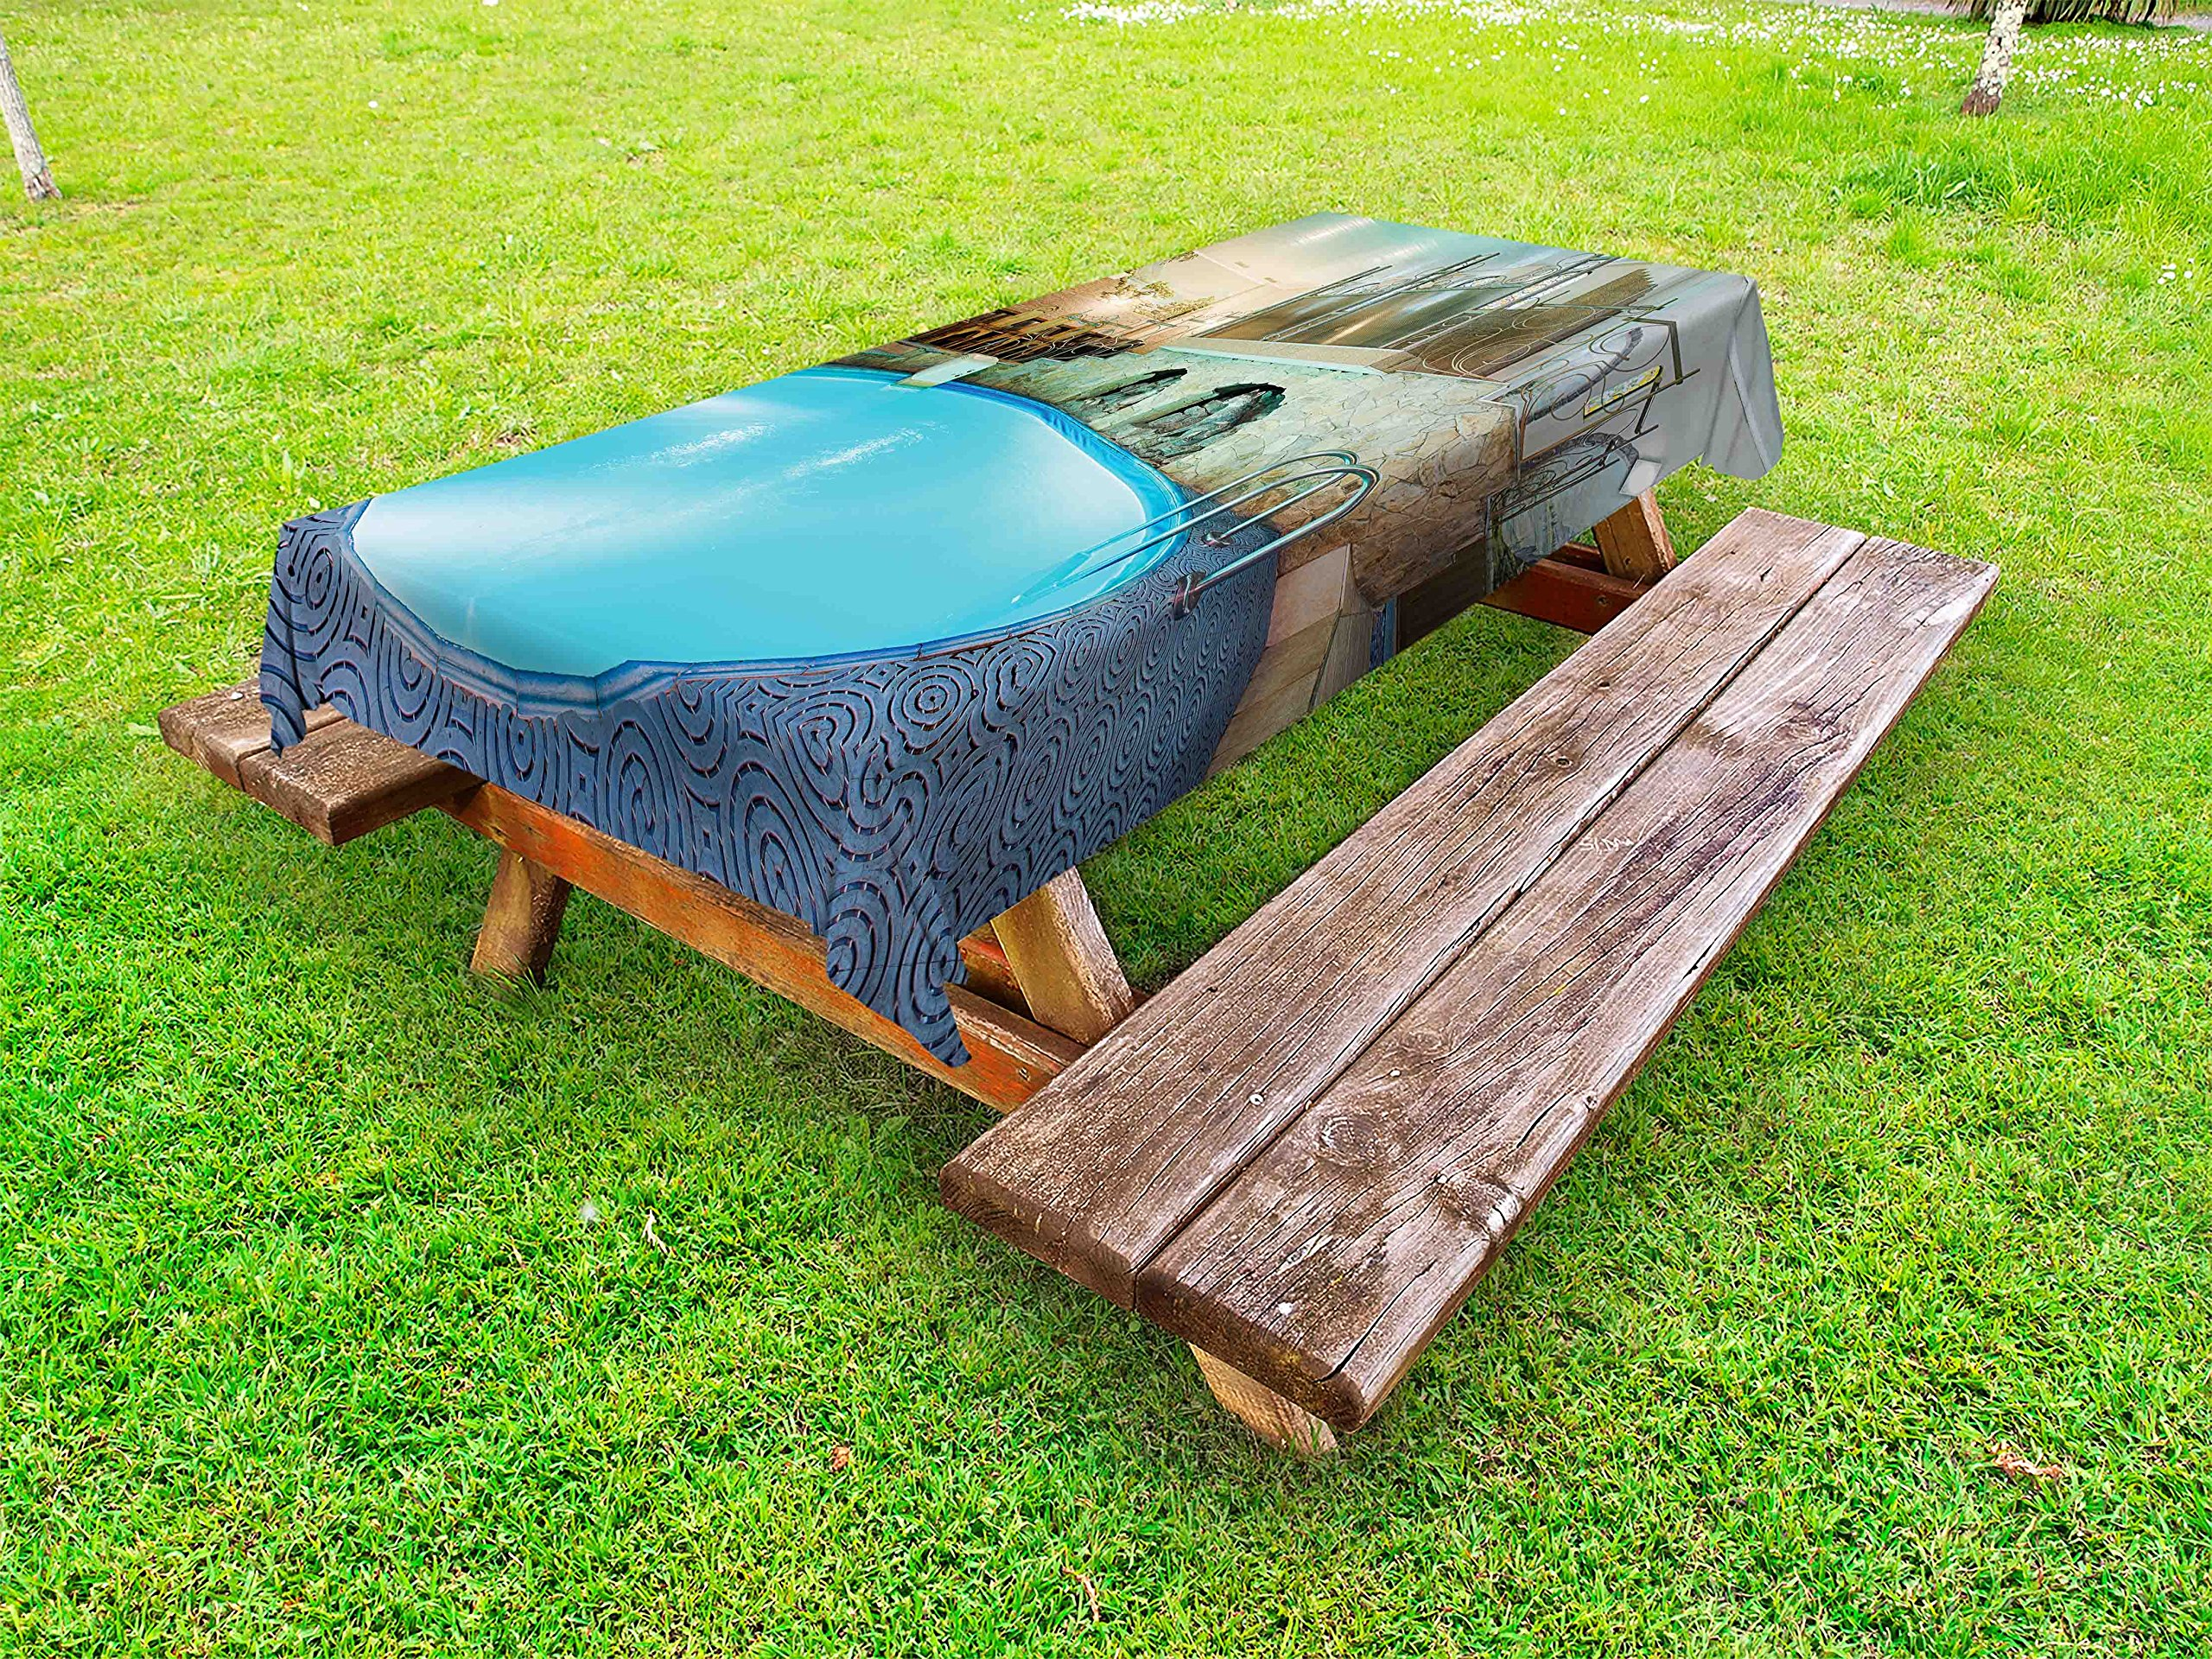 Ambesonne Modern Outdoor Tablecloth, Vivid Blue Swimming Pool in Spa Interior Resort Relaxation and Theraphy Theme, Decorative Washable Picnic Table Cloth, 58 X 120 inches, Blue Aqua Beige